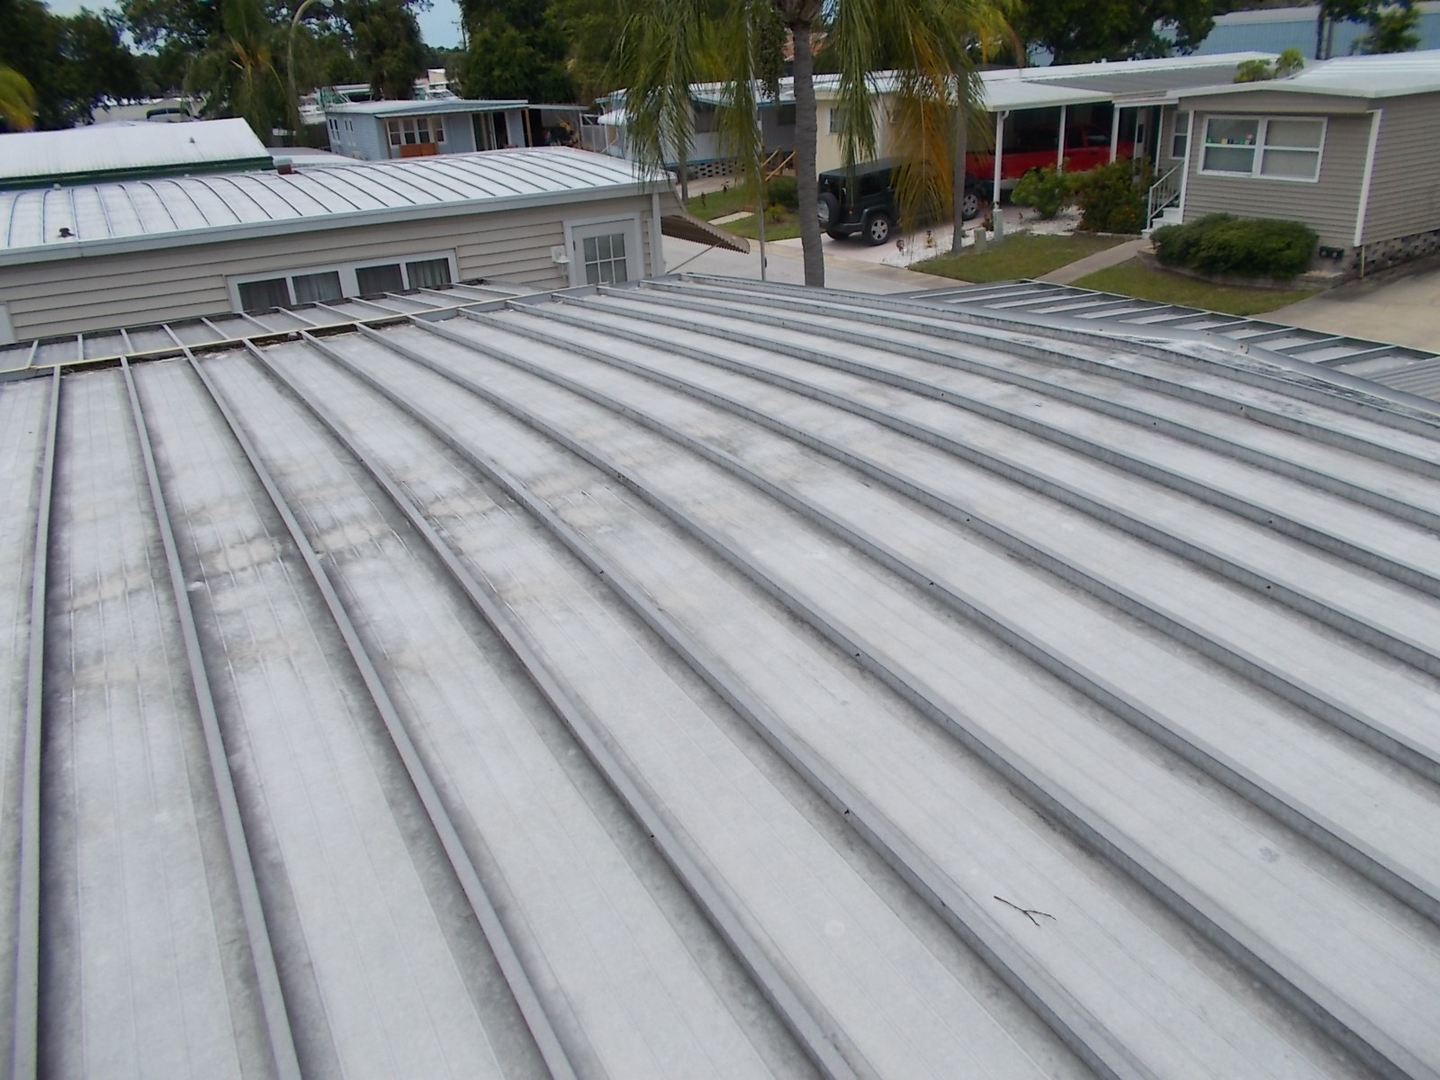 1 Mobile Home roof inspector in Pinellas, roof inspection company on drywall for mobile homes, kitchens for mobile homes, air conditioning for mobile homes, remodeling for mobile homes, construction for mobile homes, sunrooms for mobile homes, gutters for mobile homes, additions for mobile homes, roof for mobile homes, fascia for mobile homes, carports for mobile homes, shingles for mobile homes, flooring for mobile homes, replacement windows for mobile homes, cabinets for mobile homes,